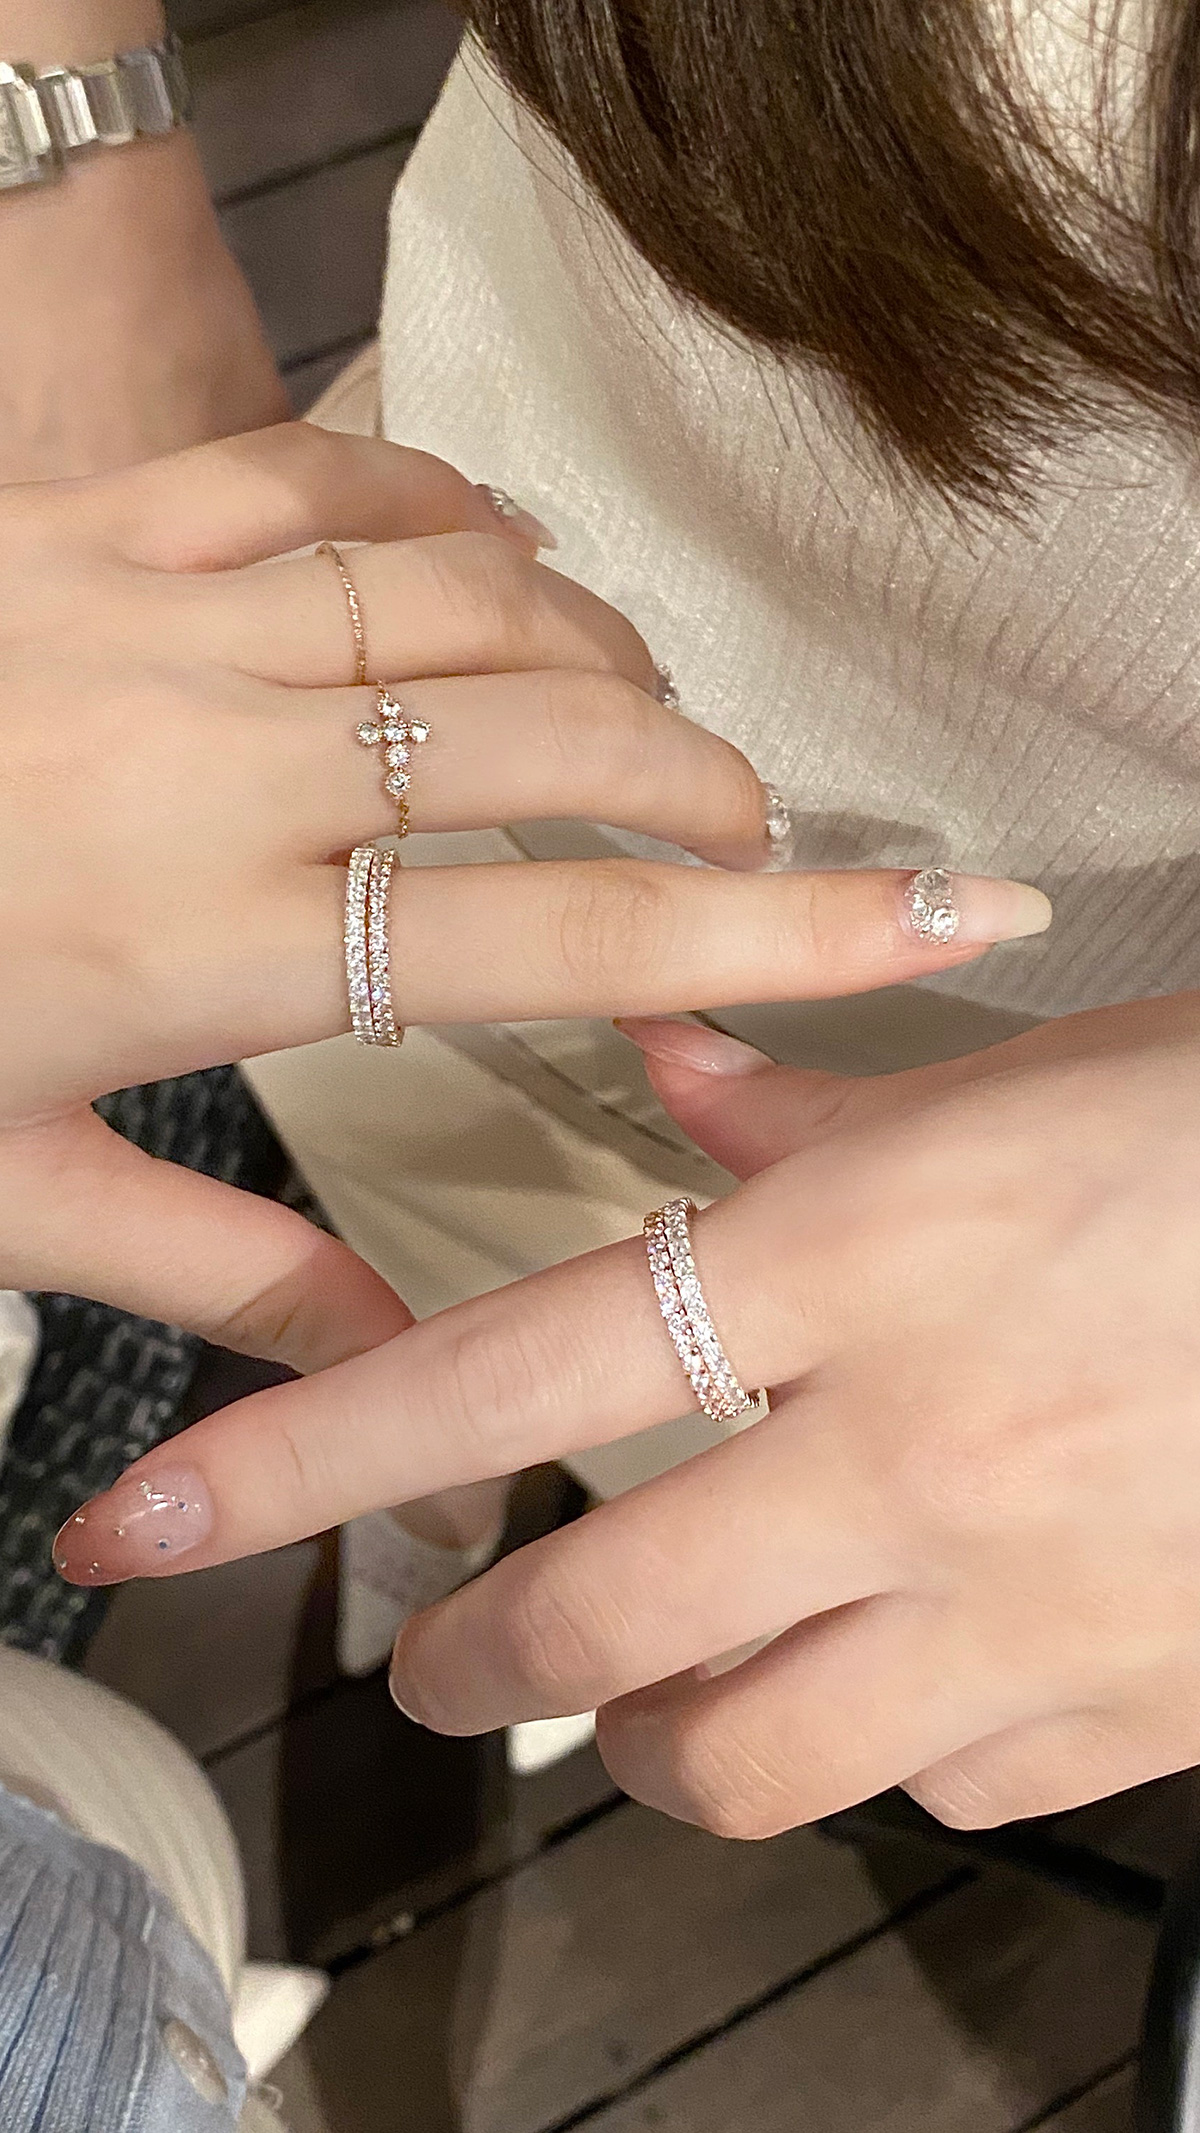 eternity Queen ring(silver925) カラー:シルバー、ピンクゴールド